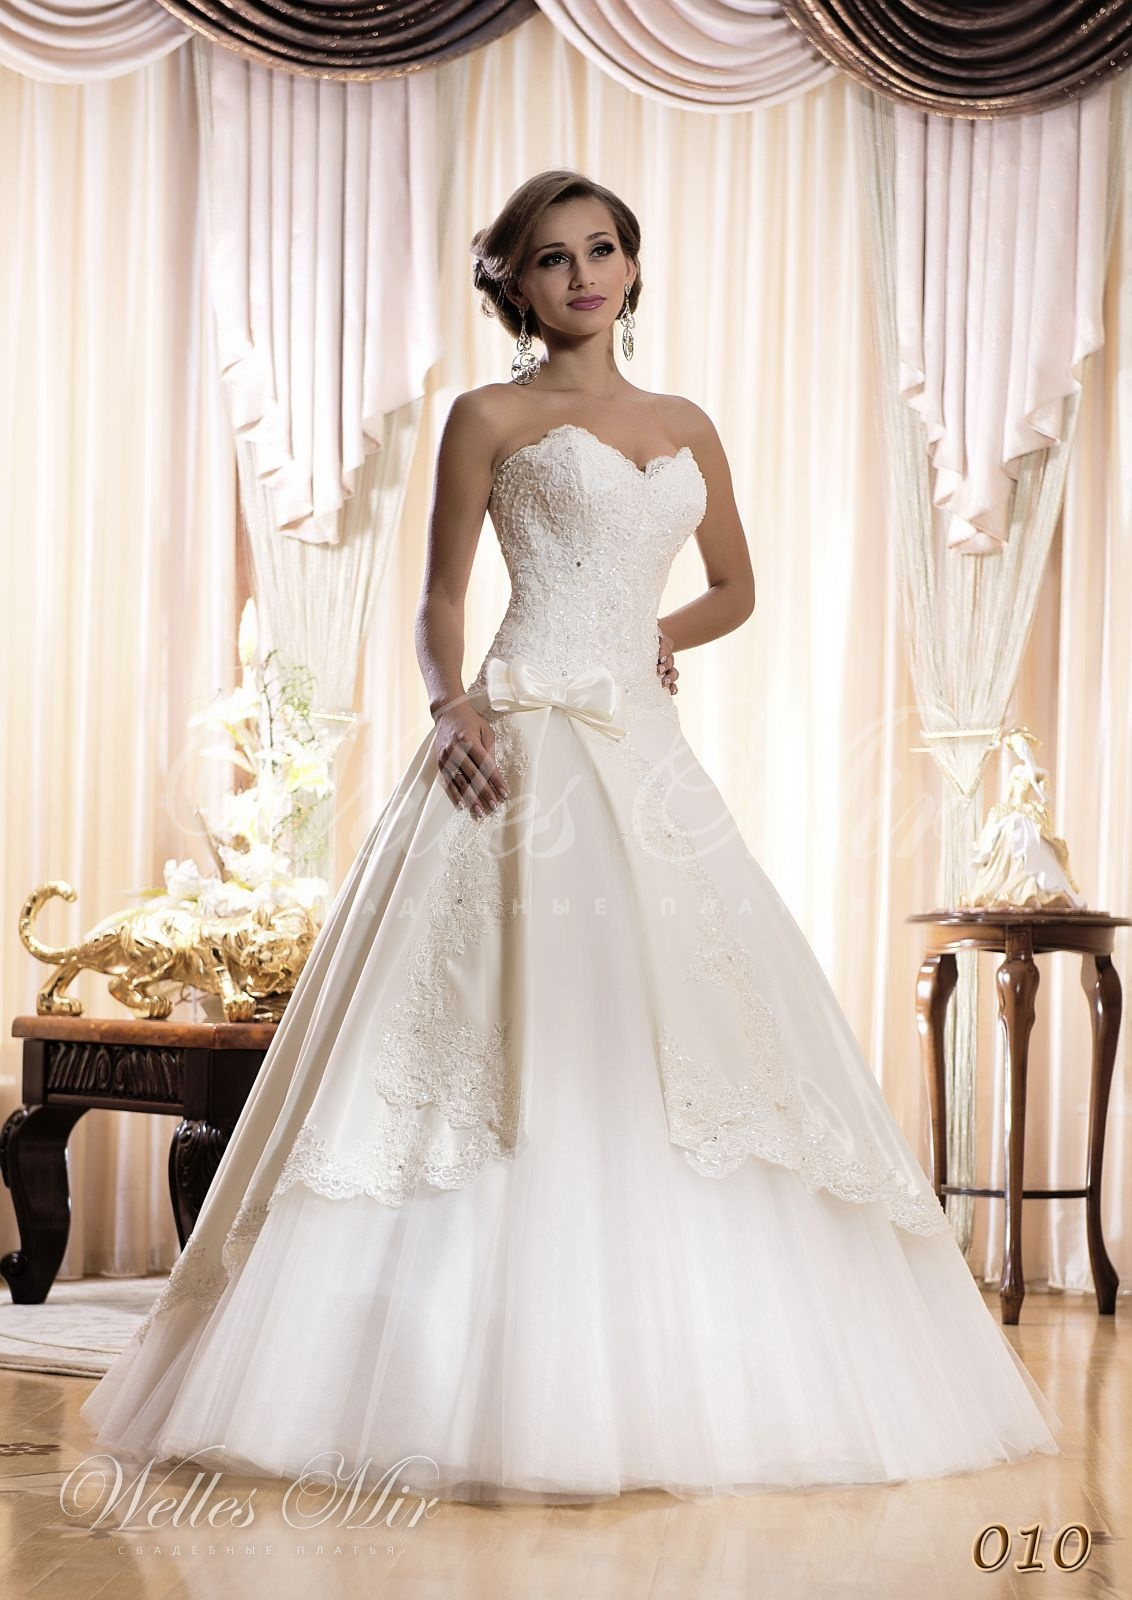 Wedding dresses 010